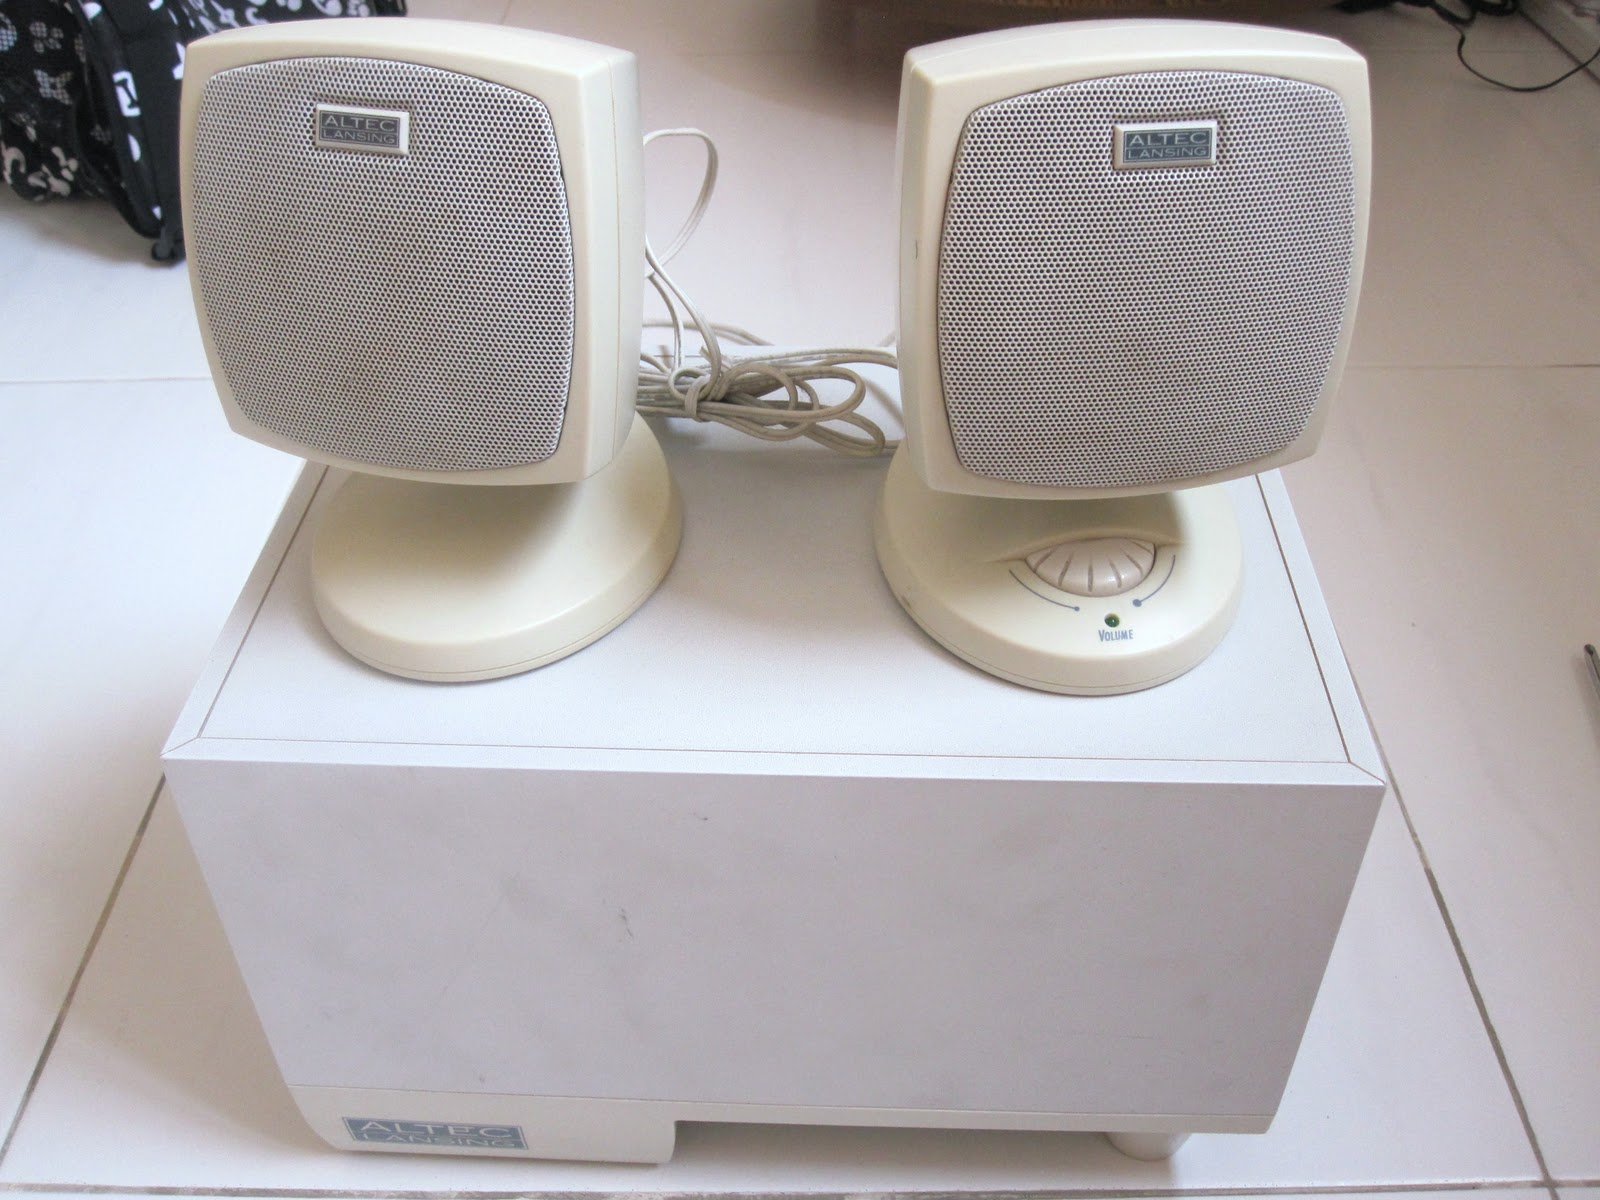 myoldvintagehifi altec lansing acs33 2 1 for pc rh myoldvintagehifi blogspot com